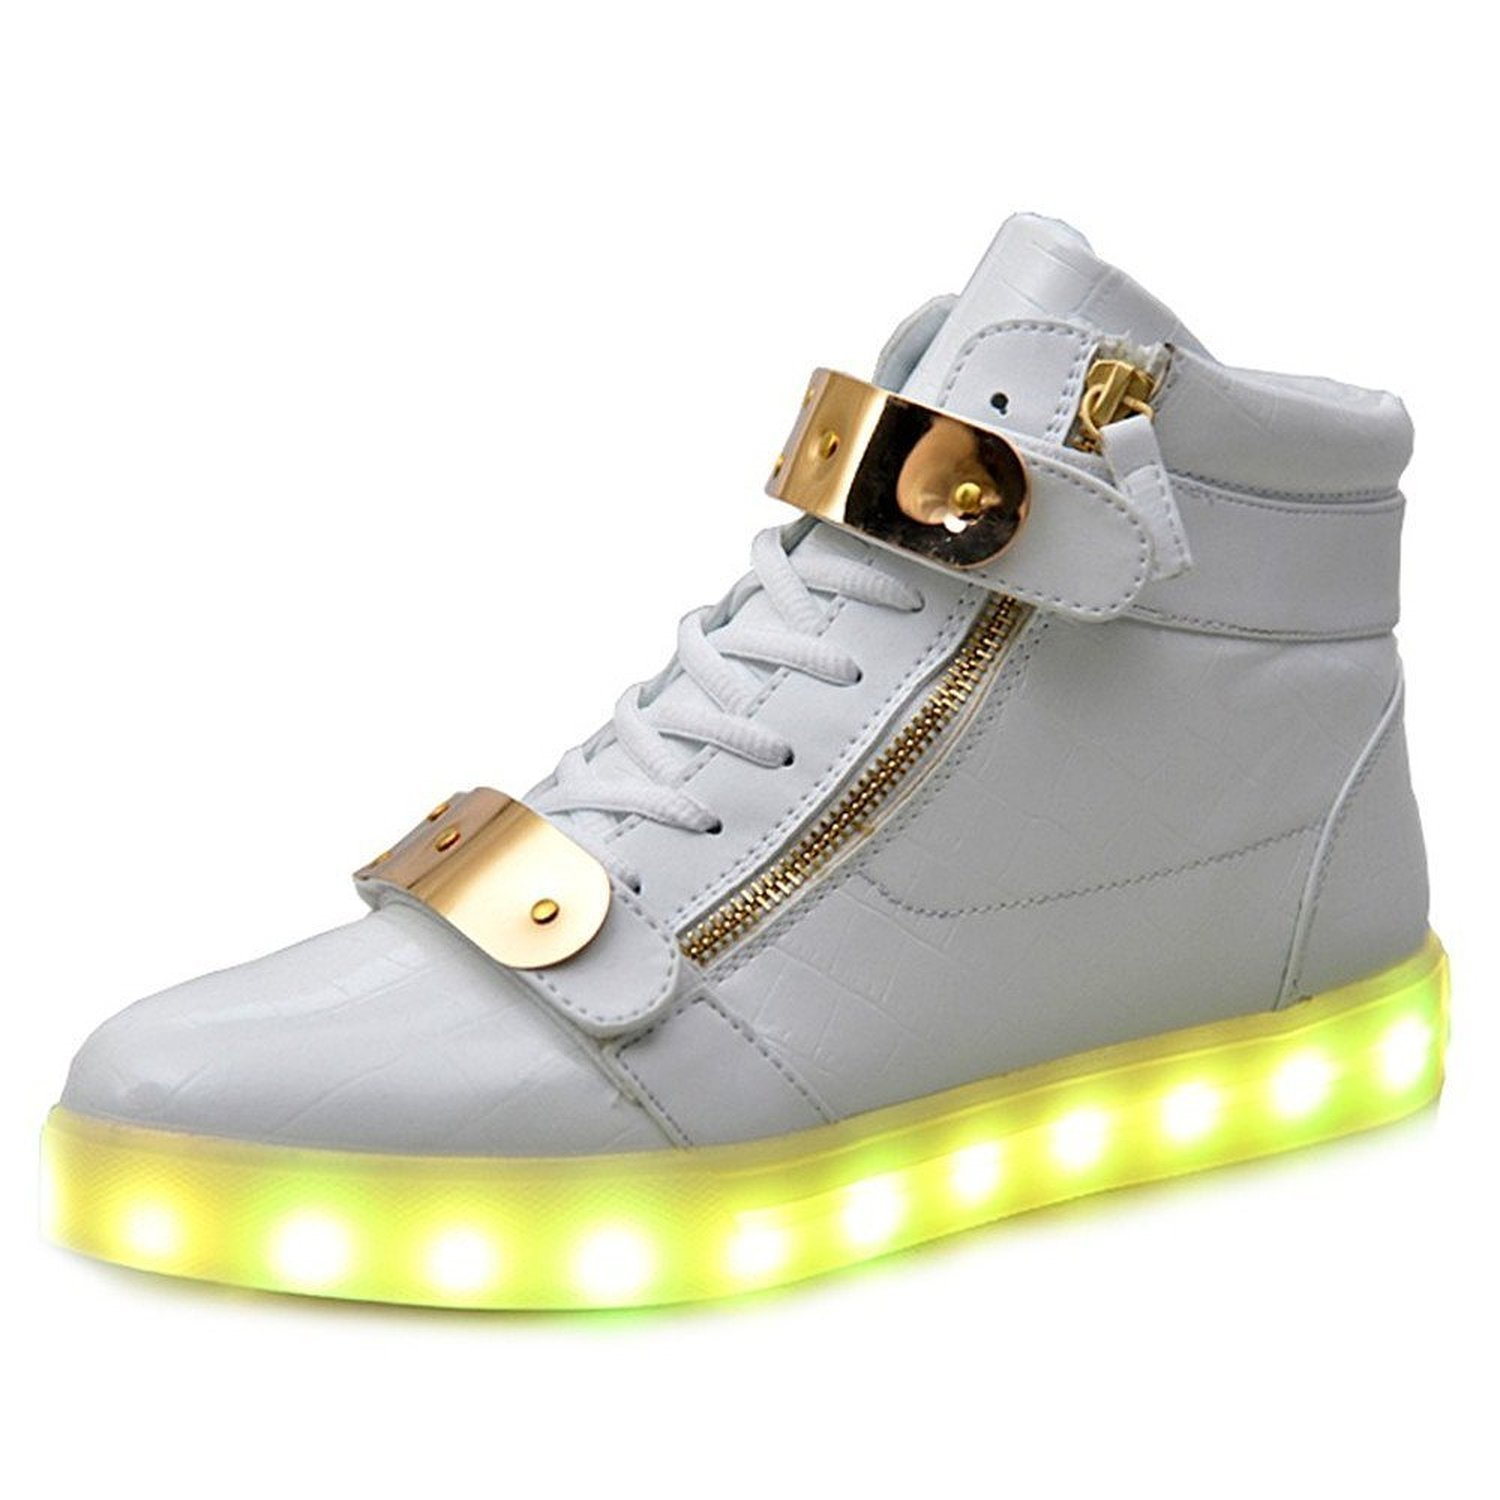 High Top Led Light Up Shoes 11 Colors Flashing Rechargeable Sneakers for Mens Womens (White 37)